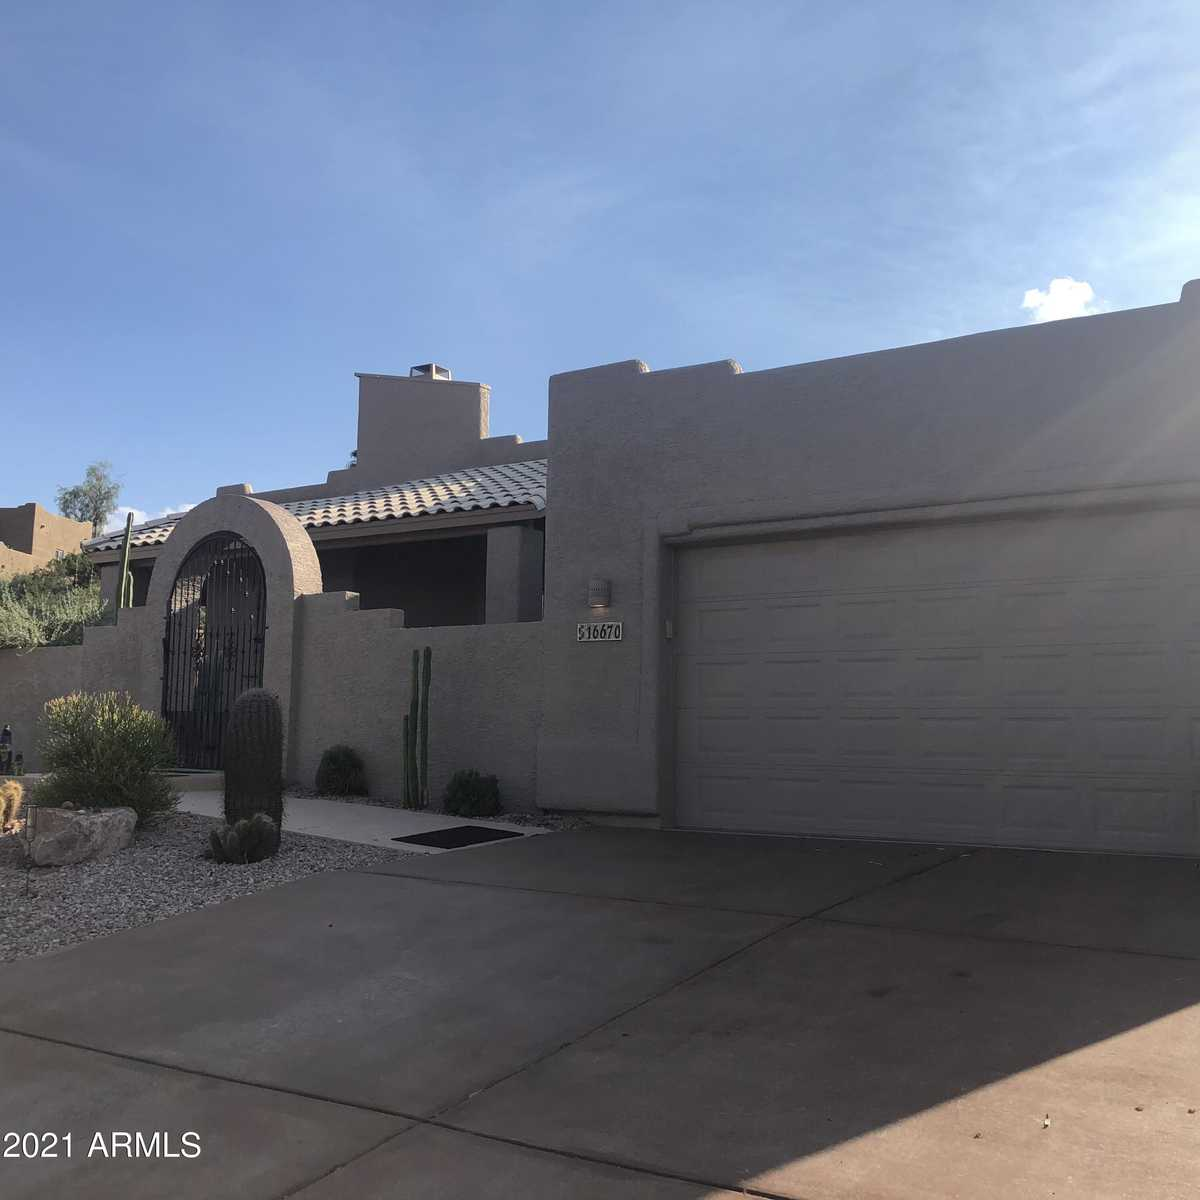 $725,000 - 3Br/3Ba - Home for Sale in Fountain Hills Arizona No. 505-d, Fountain Hills